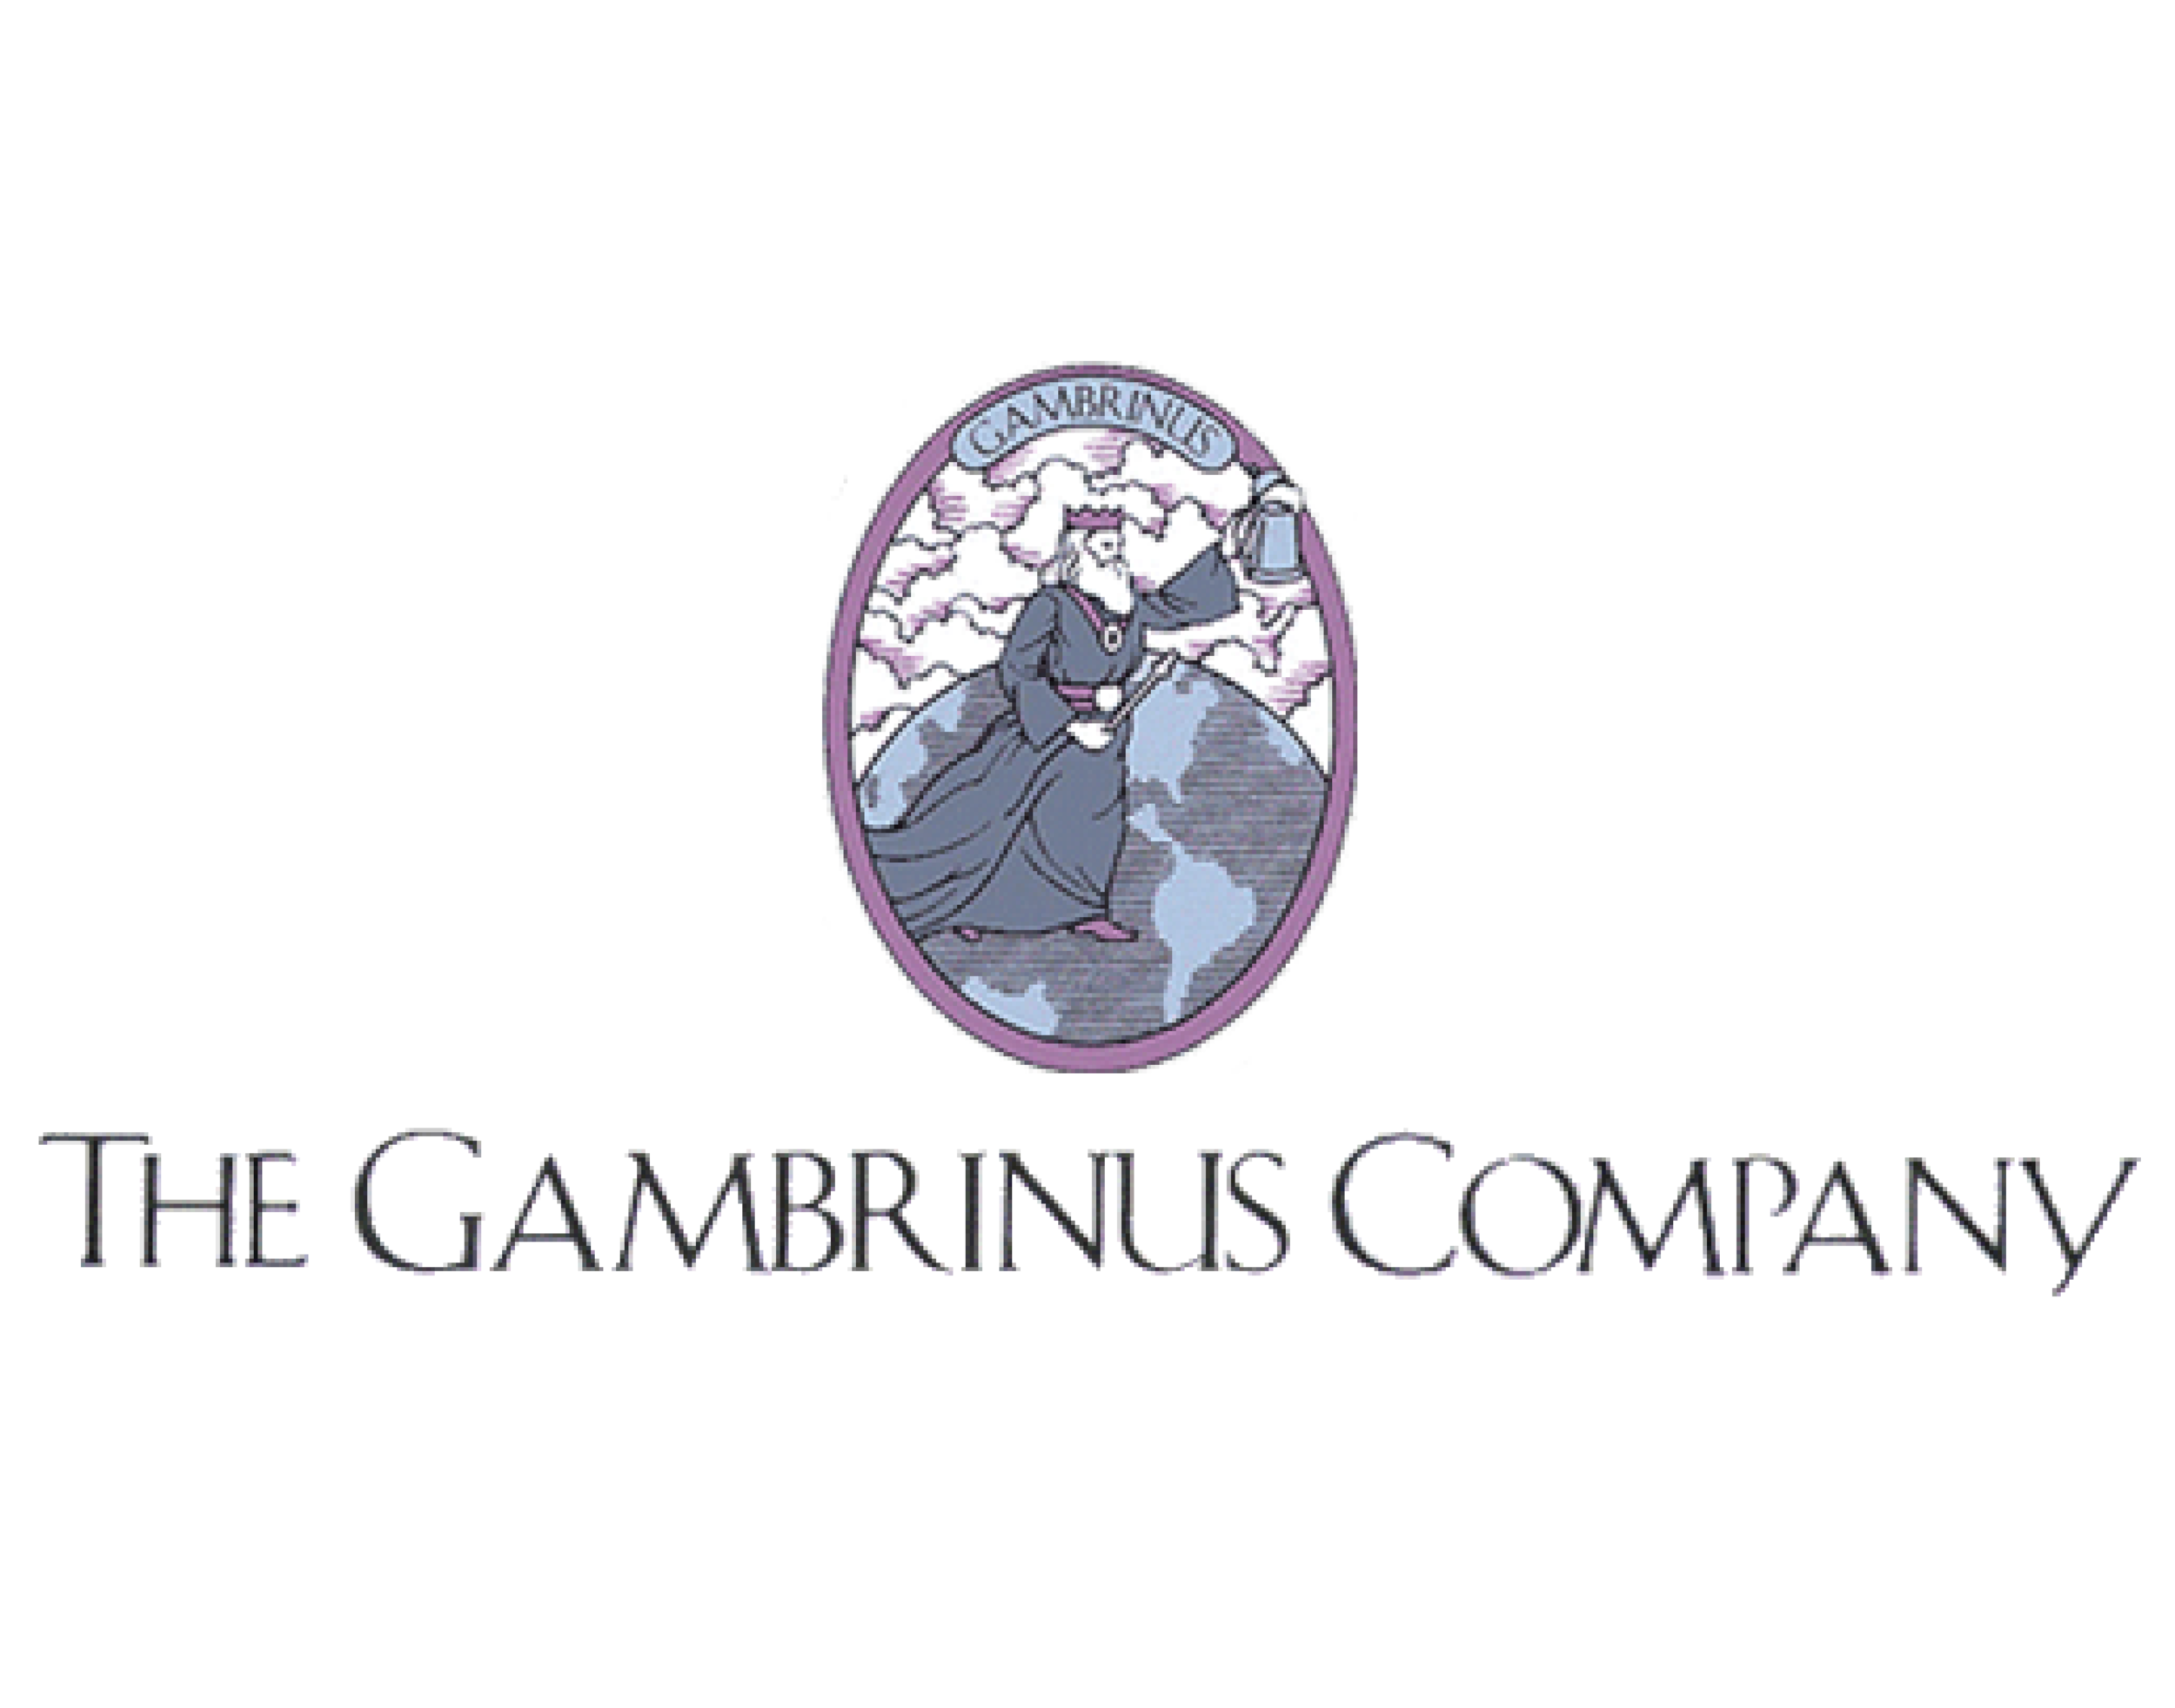 The Gambrinus Company logo. Links to the Gambrinus Company website.